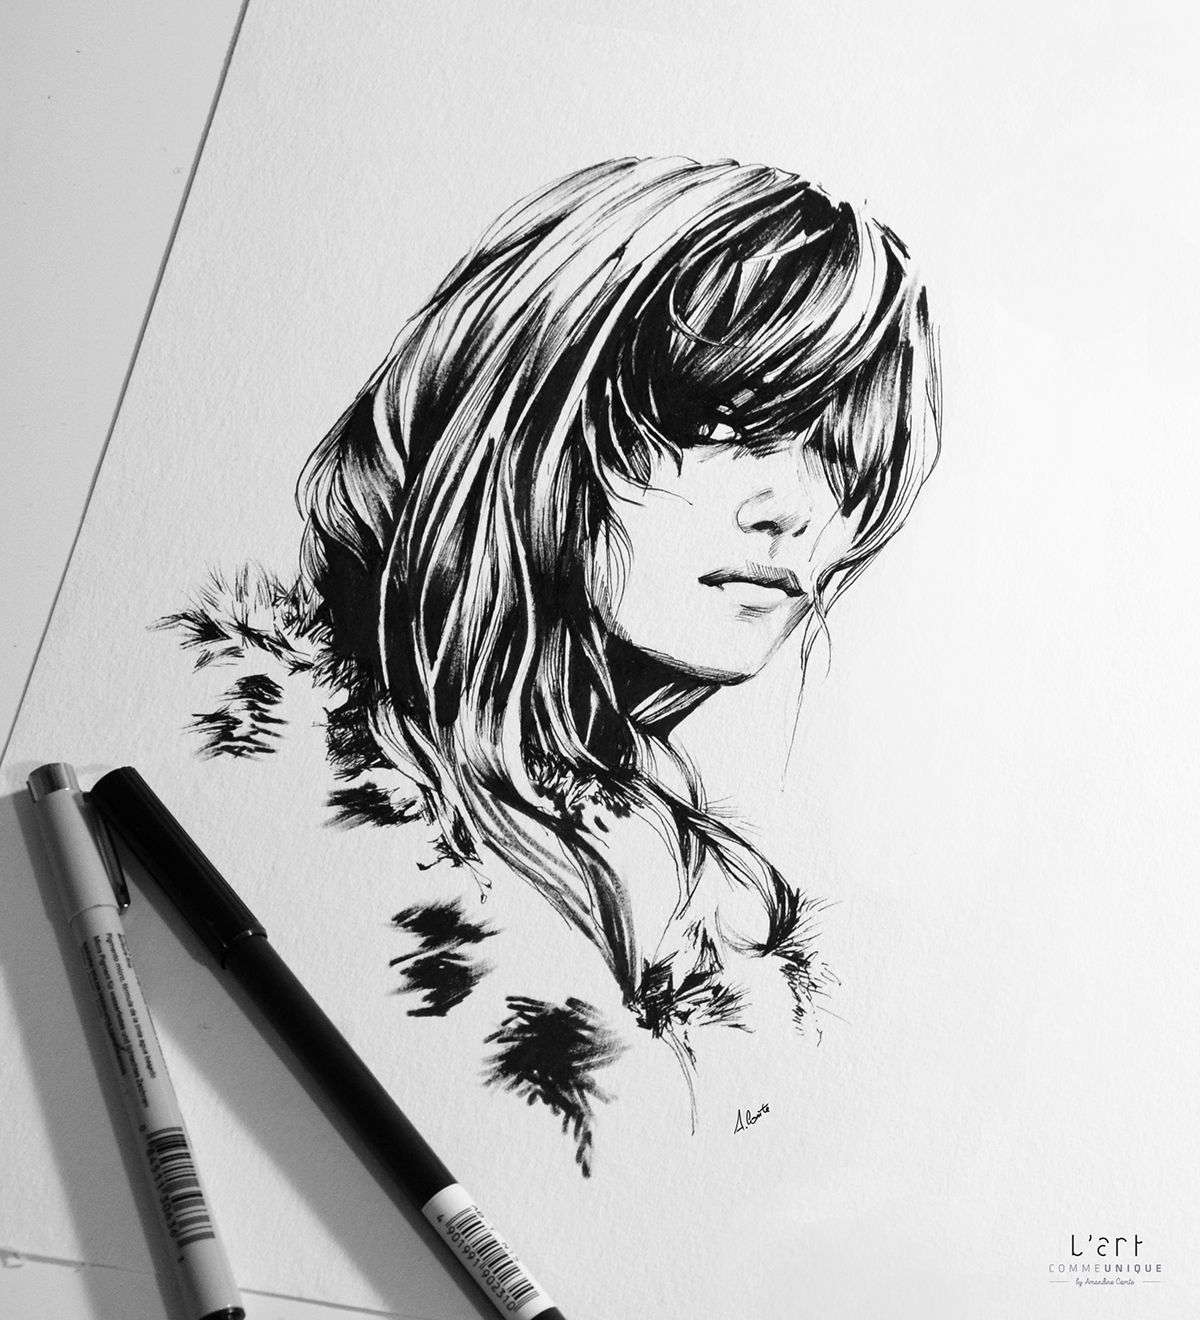 Ink & Pencil on Behance